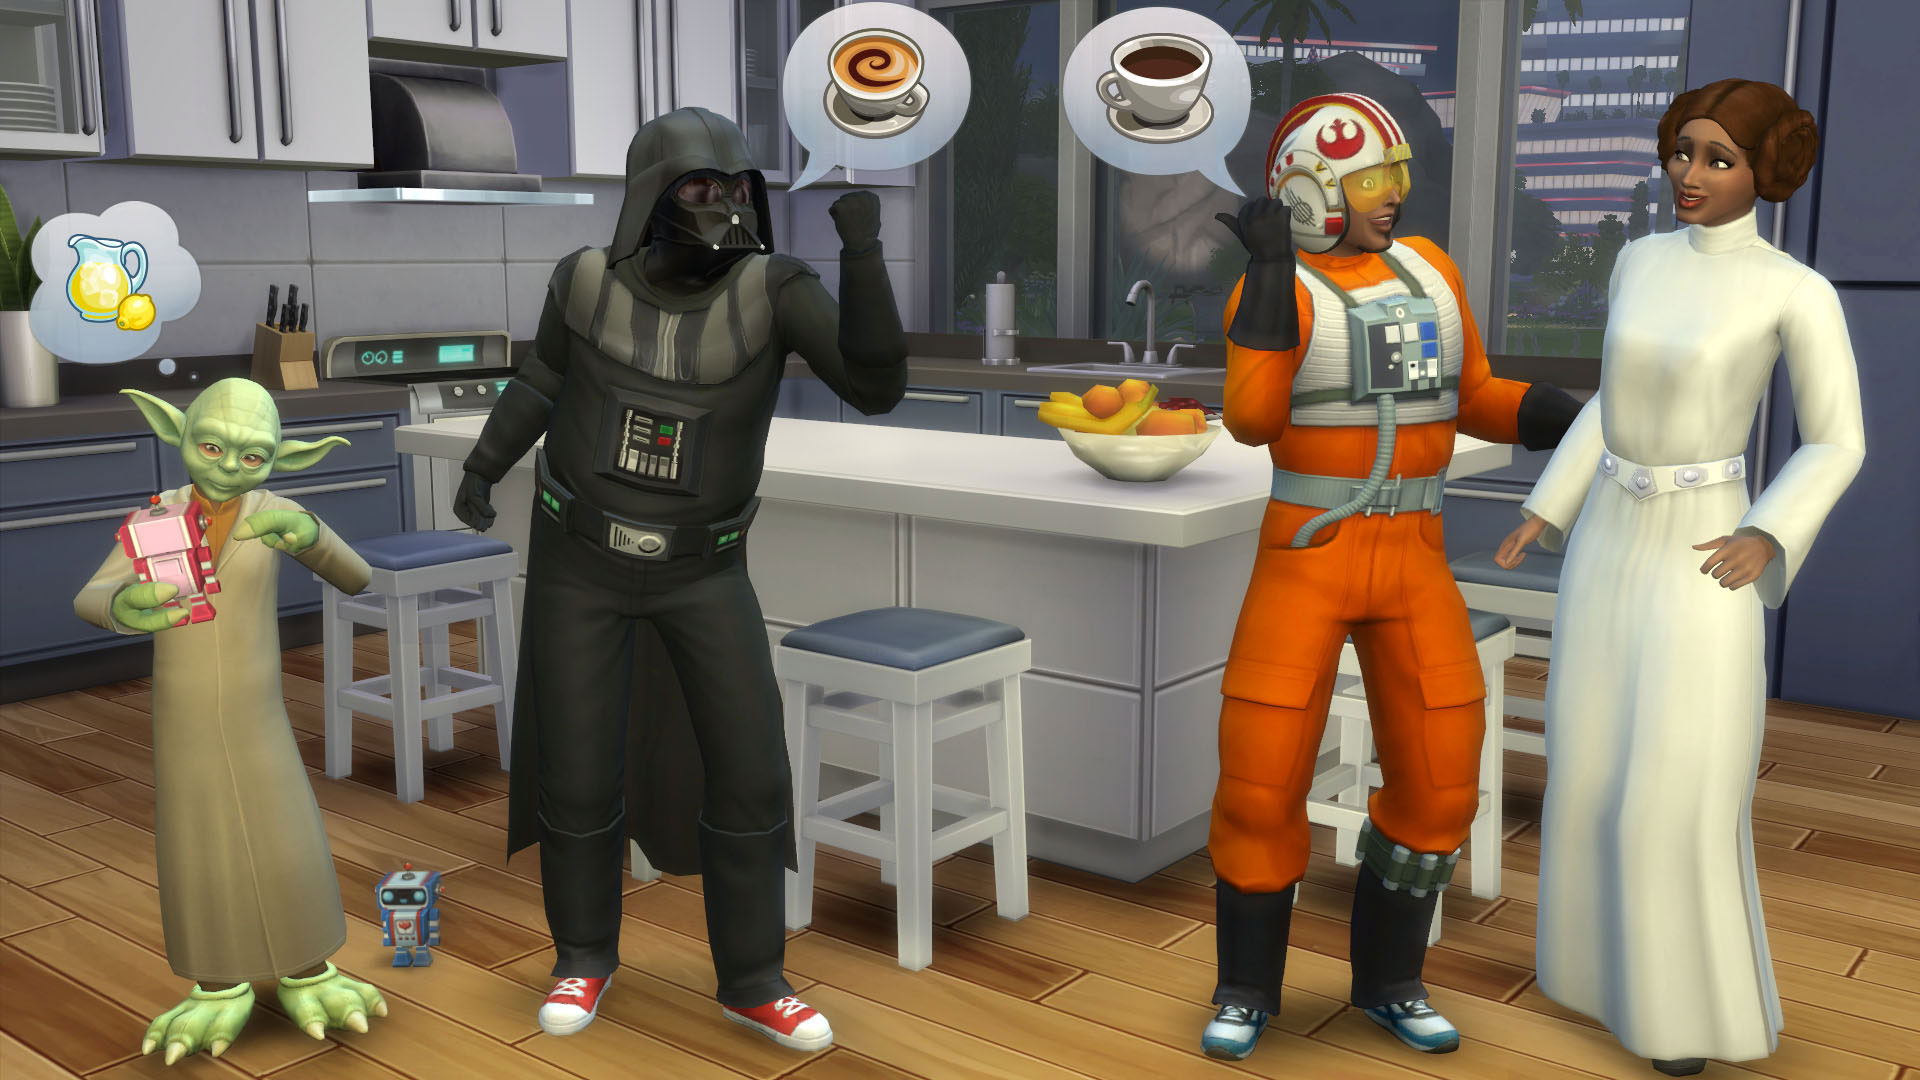 The Sims 4 gets Star Wars costumes, ghosts and swimming pools in free updates